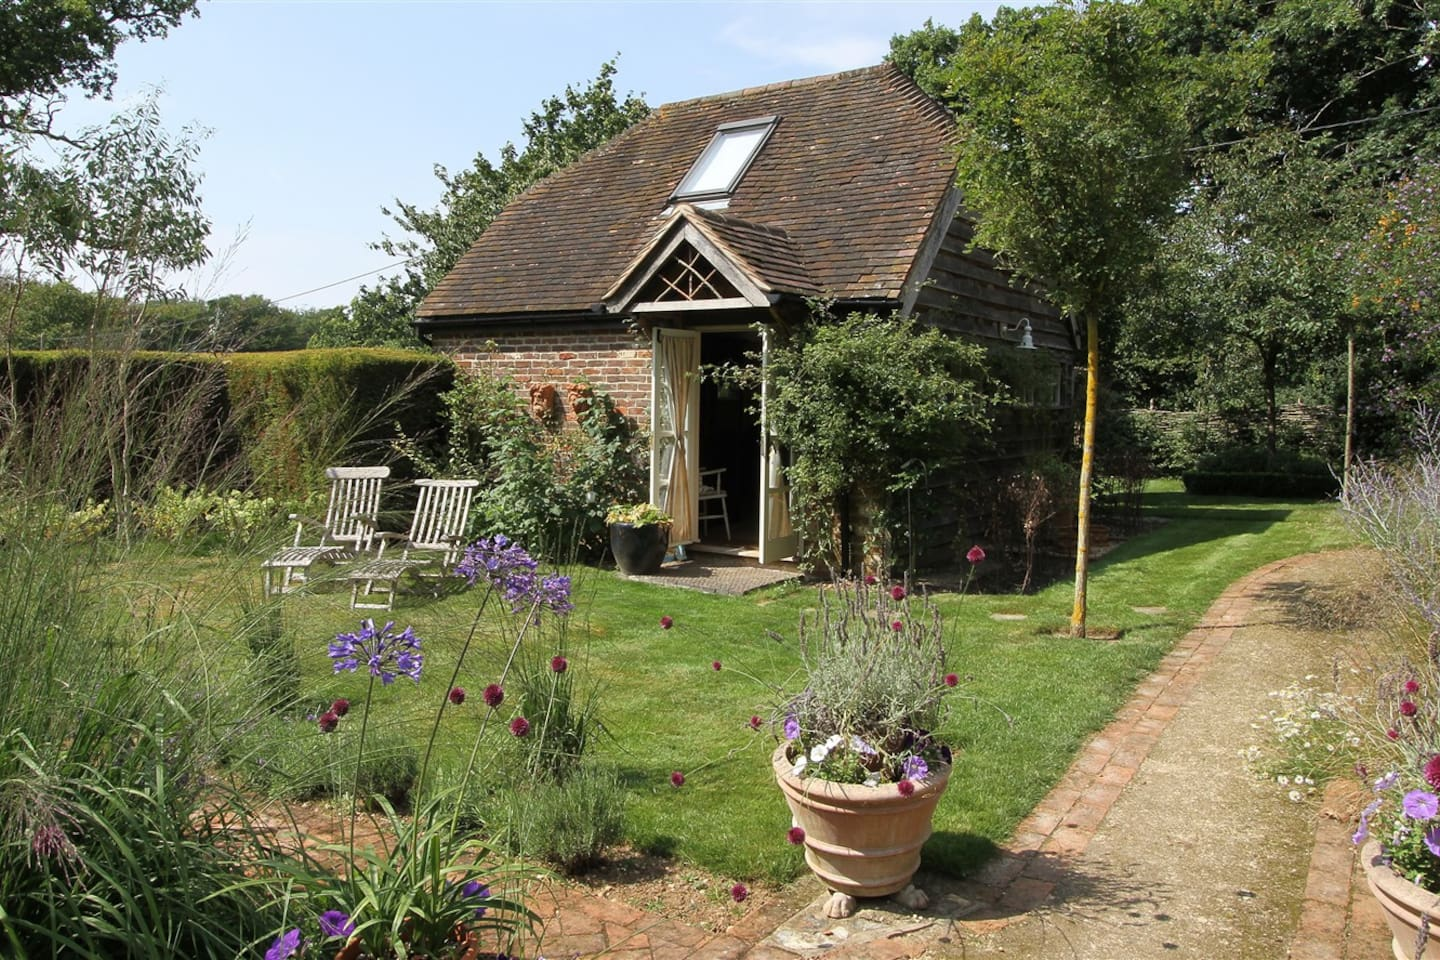 The guest accommodation is set in the natural and spacious gardens